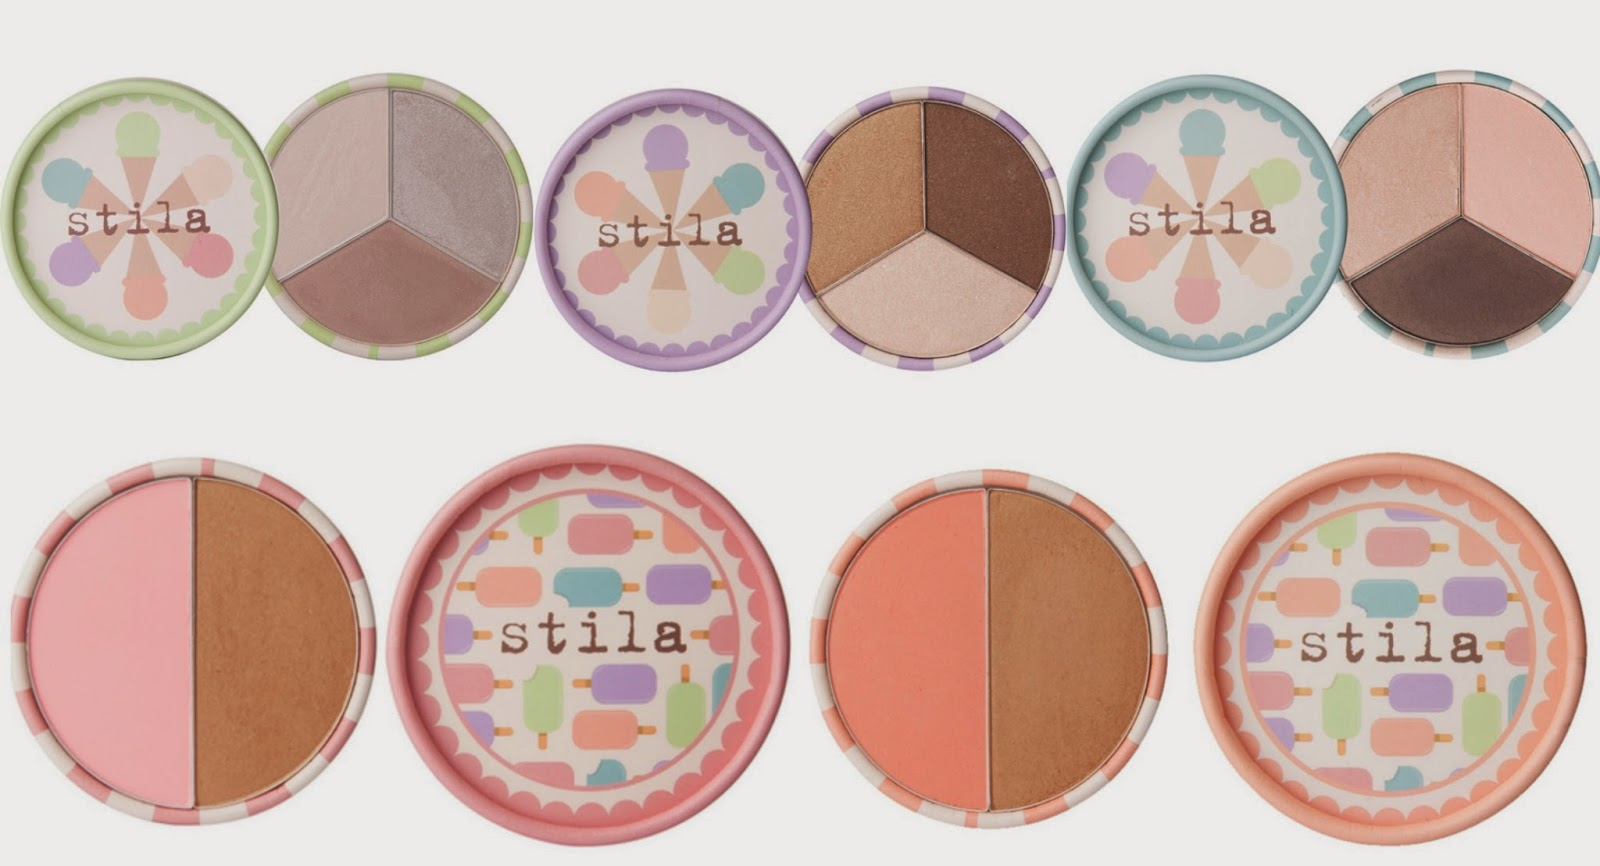 NEW! Limited Edition Stila Ice Cream Collection for Summer 2014